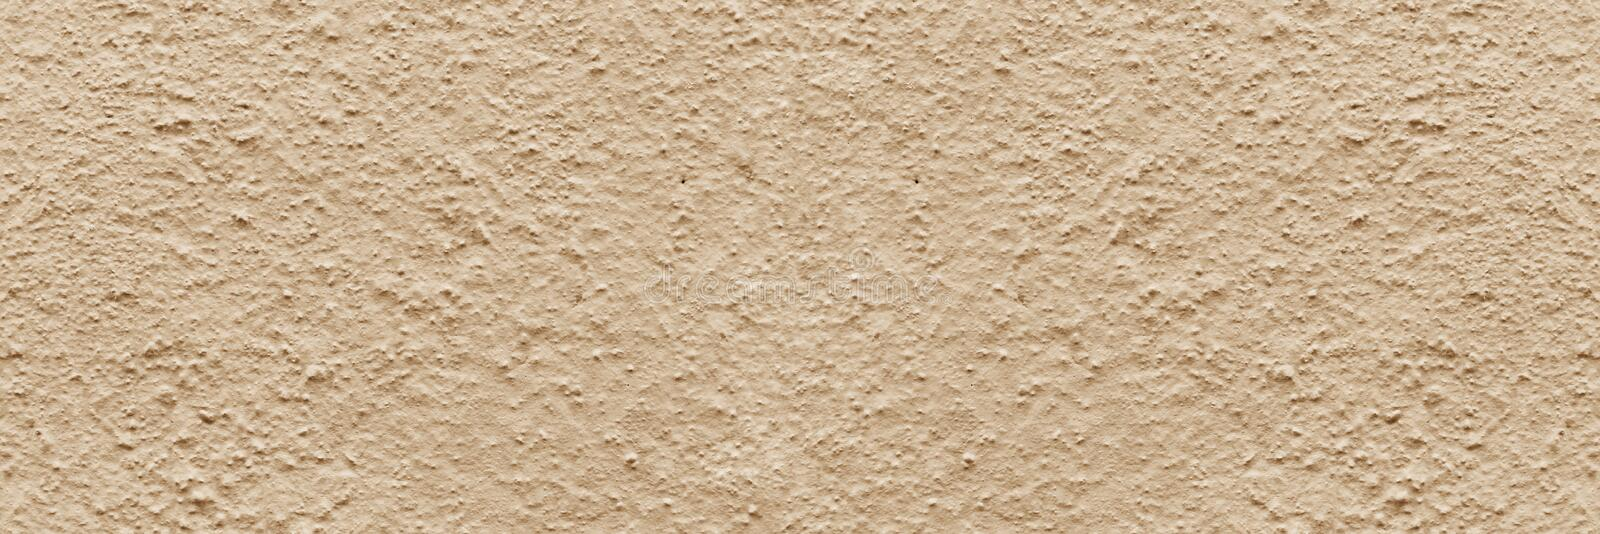 Panorama beige rough textured concrete background. copy space, text box, background for lettering, background for calligraphy royalty free stock photos